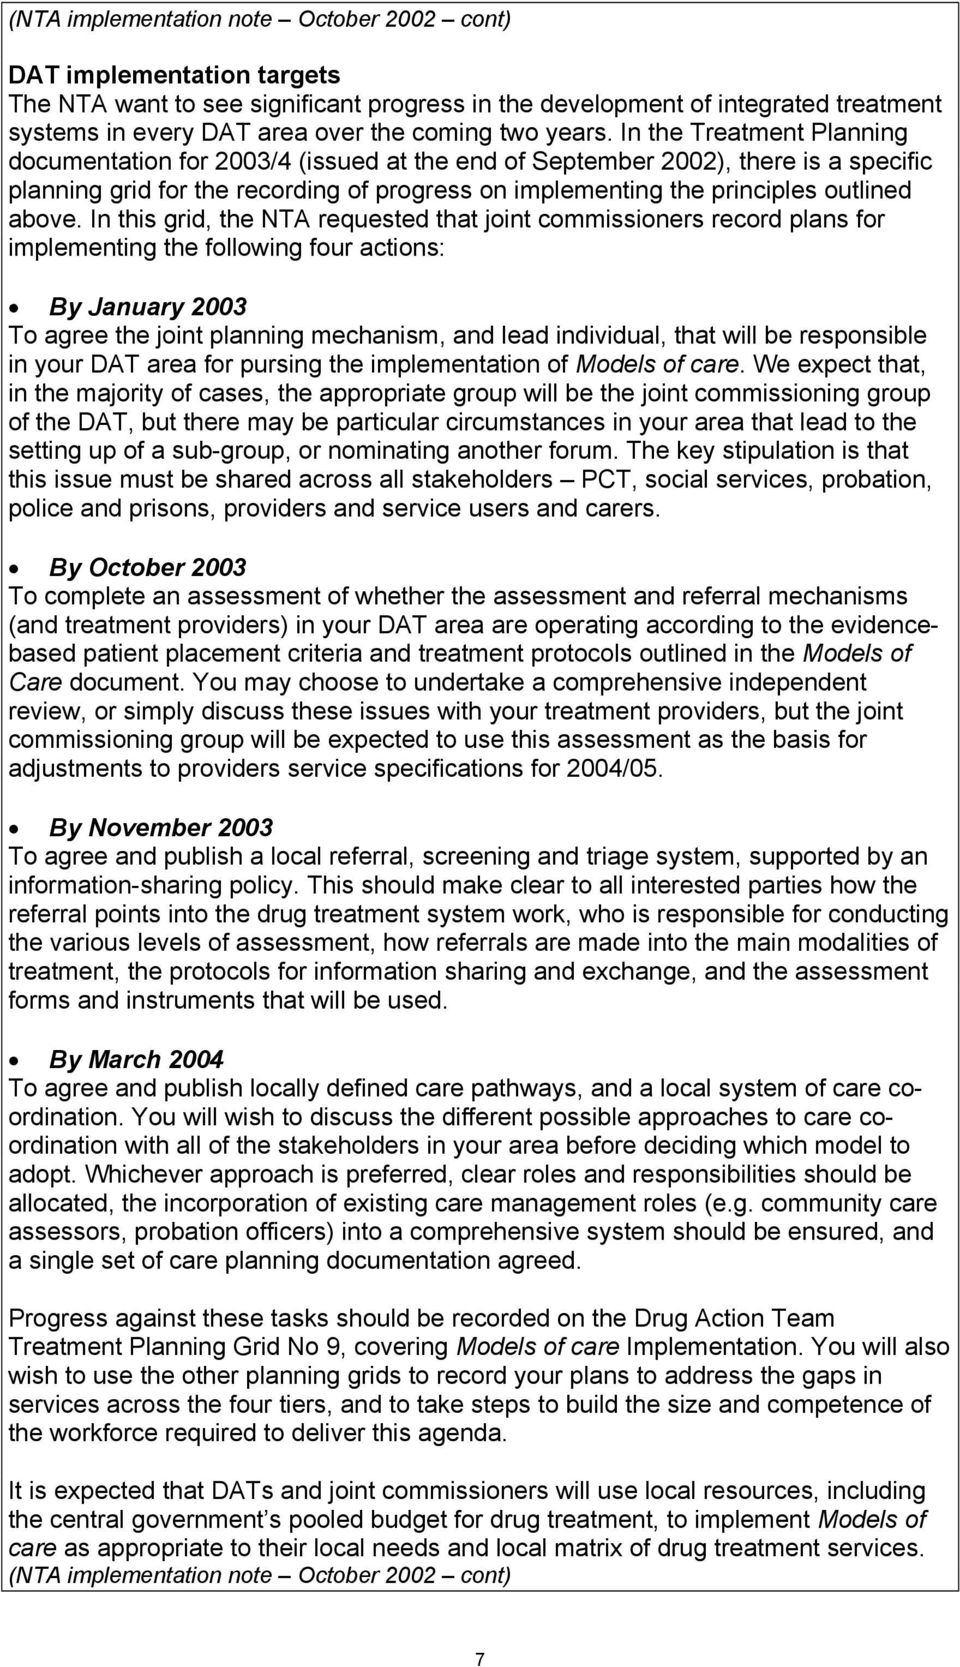 In the Treatment Planning documentation for 2003/4 (issued at the end of September 2002), there is a specific planning grid for the recording of progress on implementing the principles outlined above.